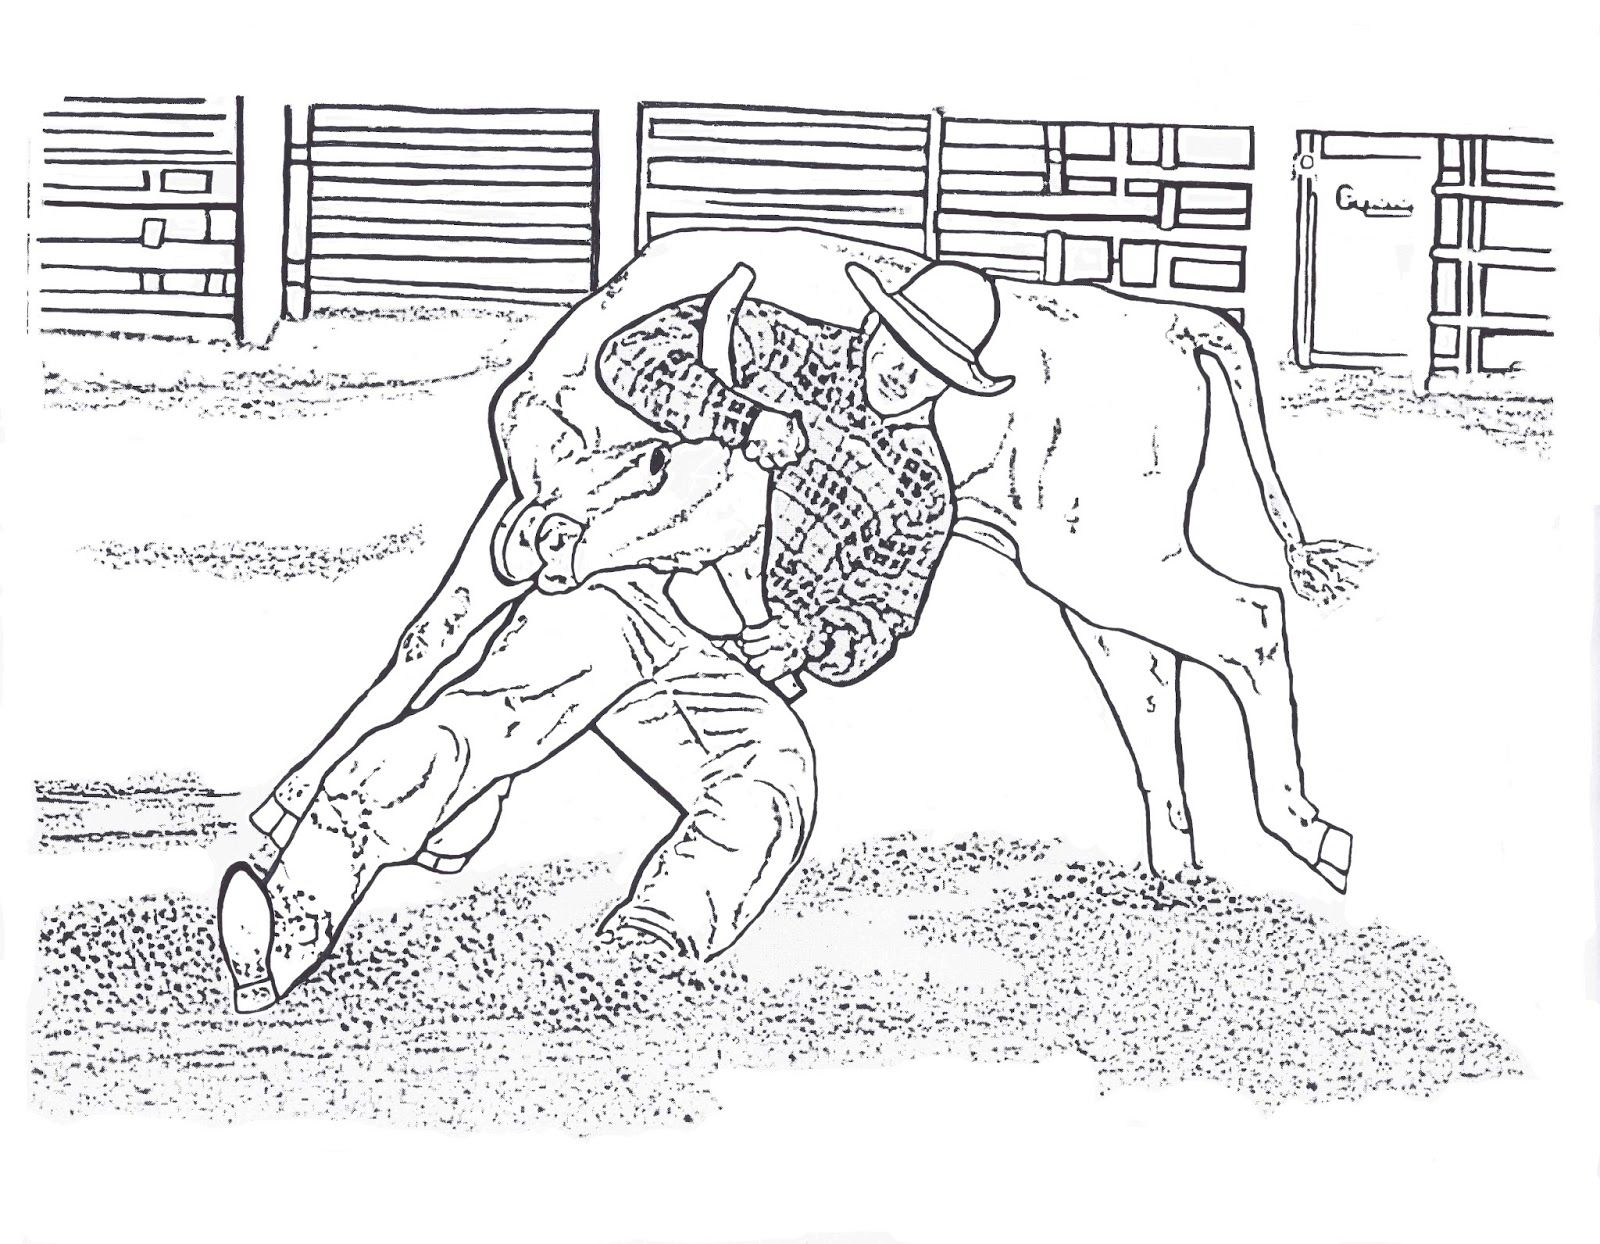 rodeo horse coloring pages - Rodeo Coloring Pages